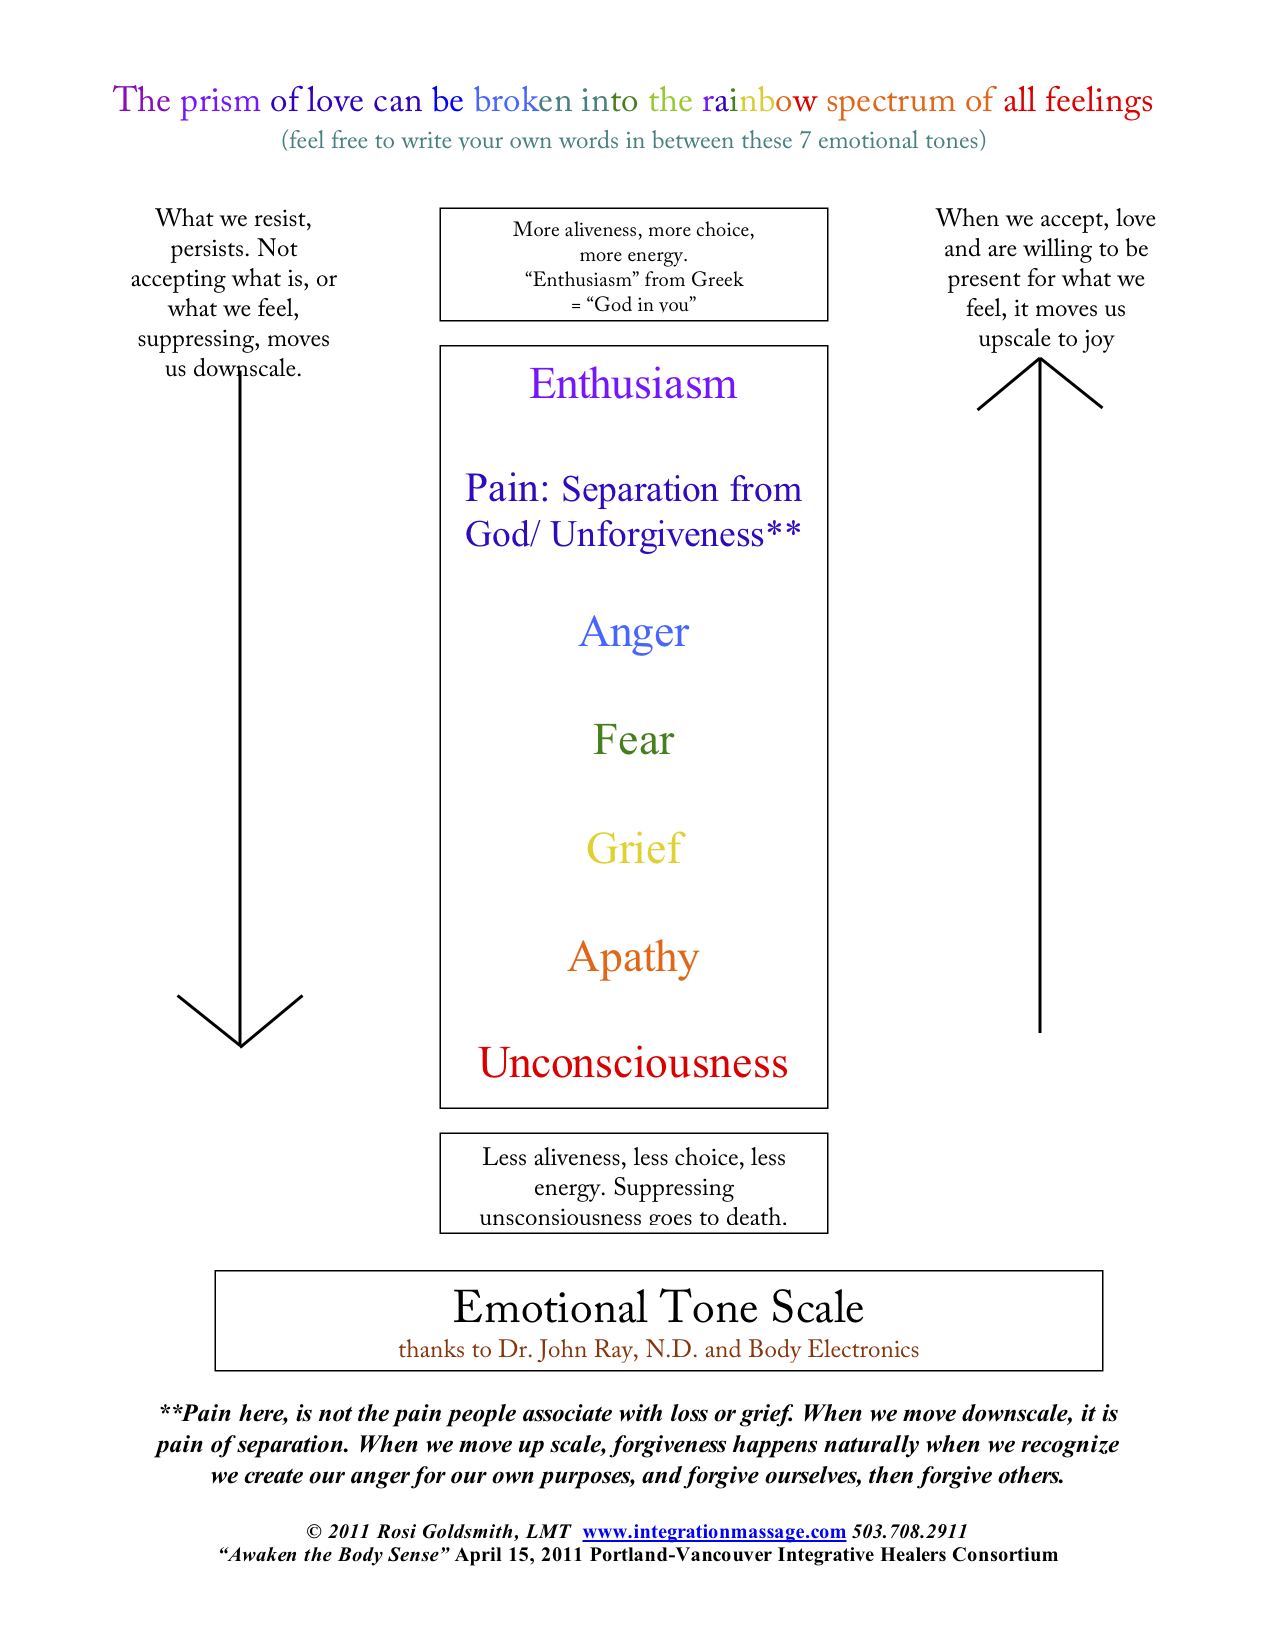 Emotional Scale Chart Emotional Tone Scale w Rosi